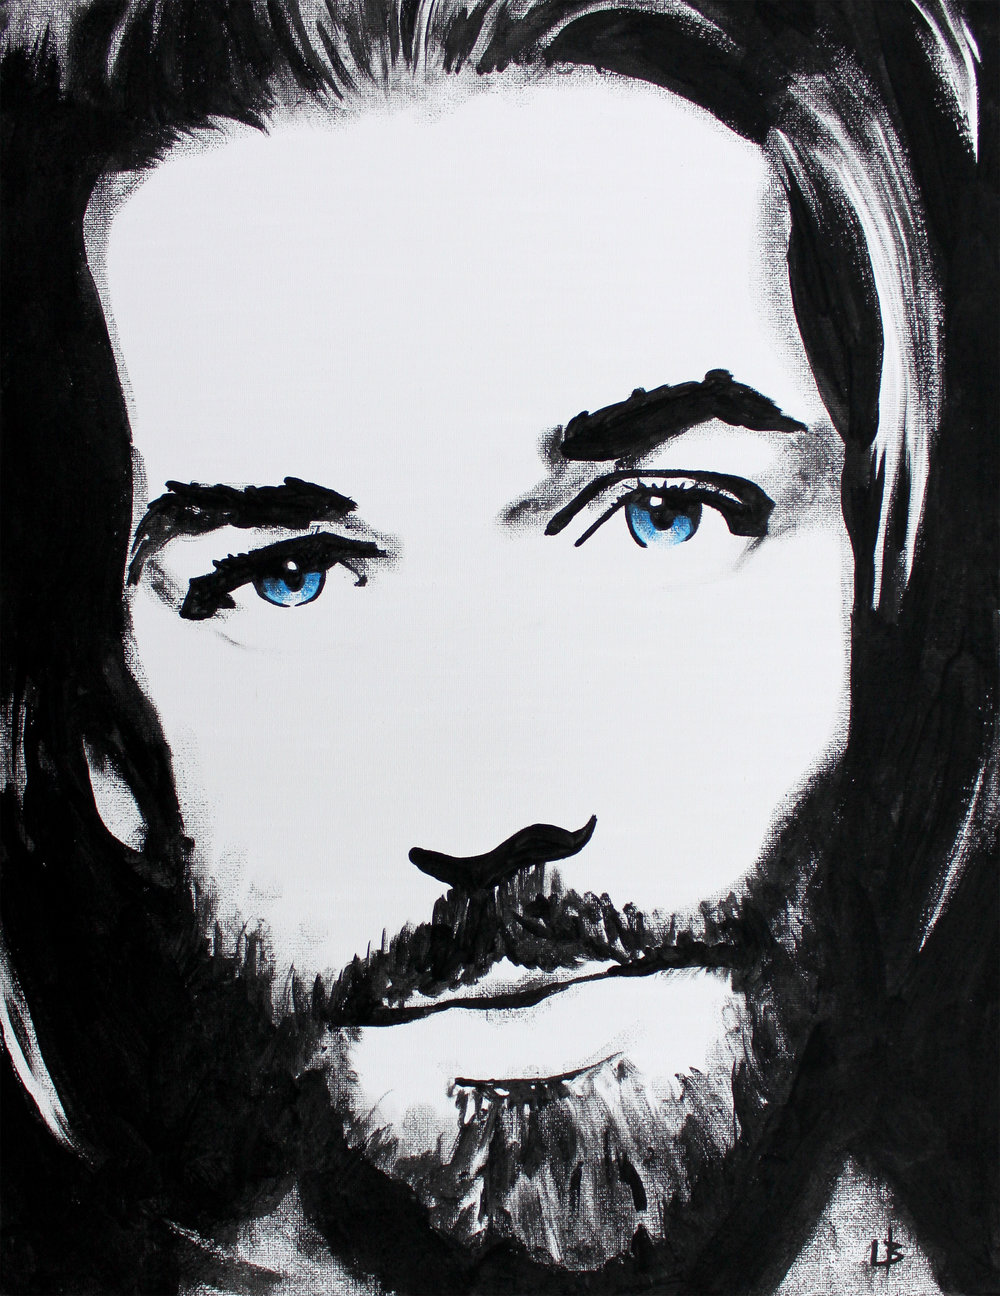 Follow Me - Painted Live - Portraits of Christ